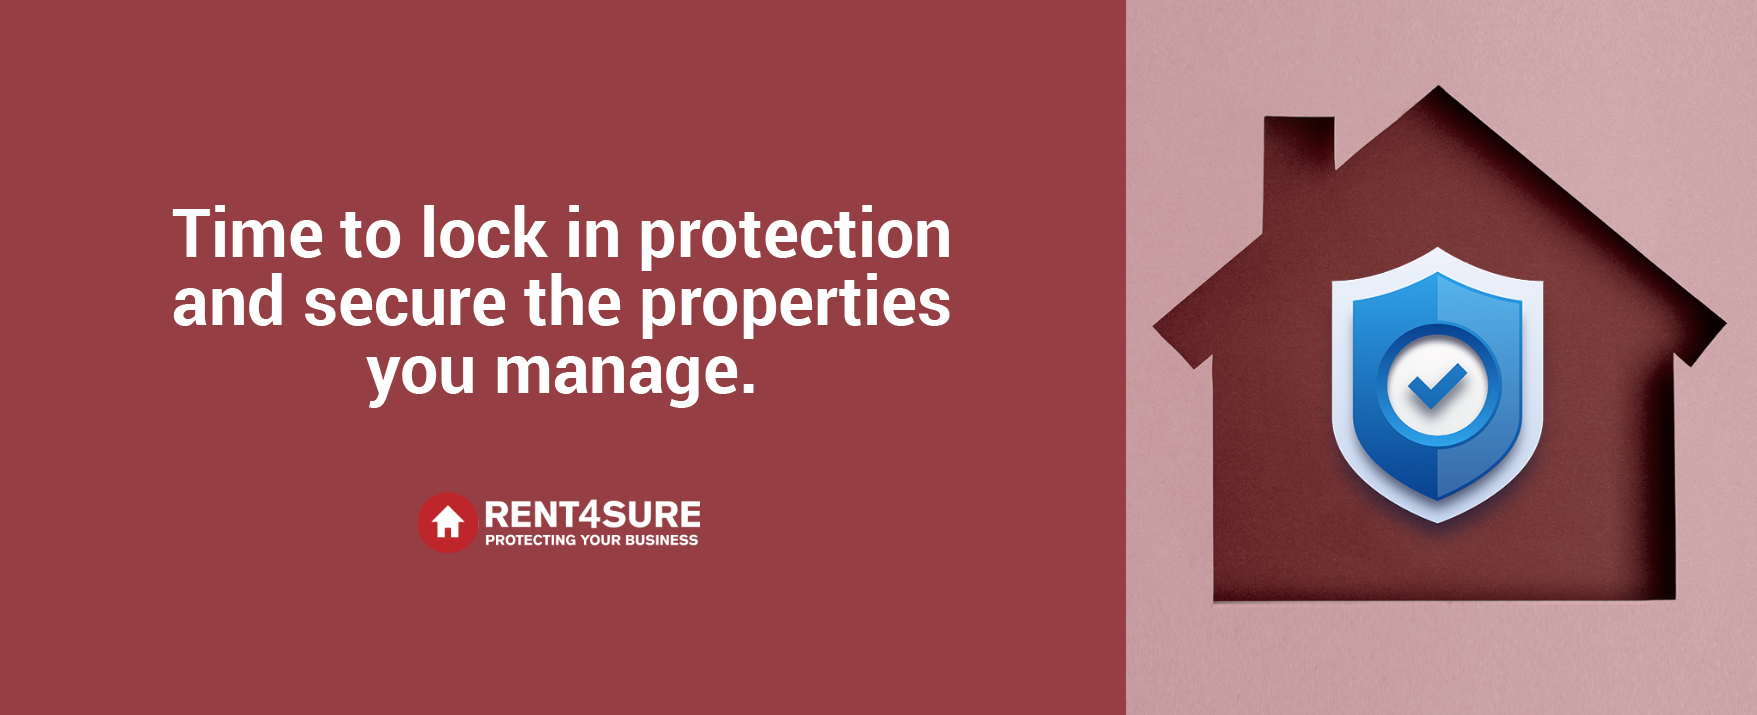 Protect the properties you manage during these uncertain times